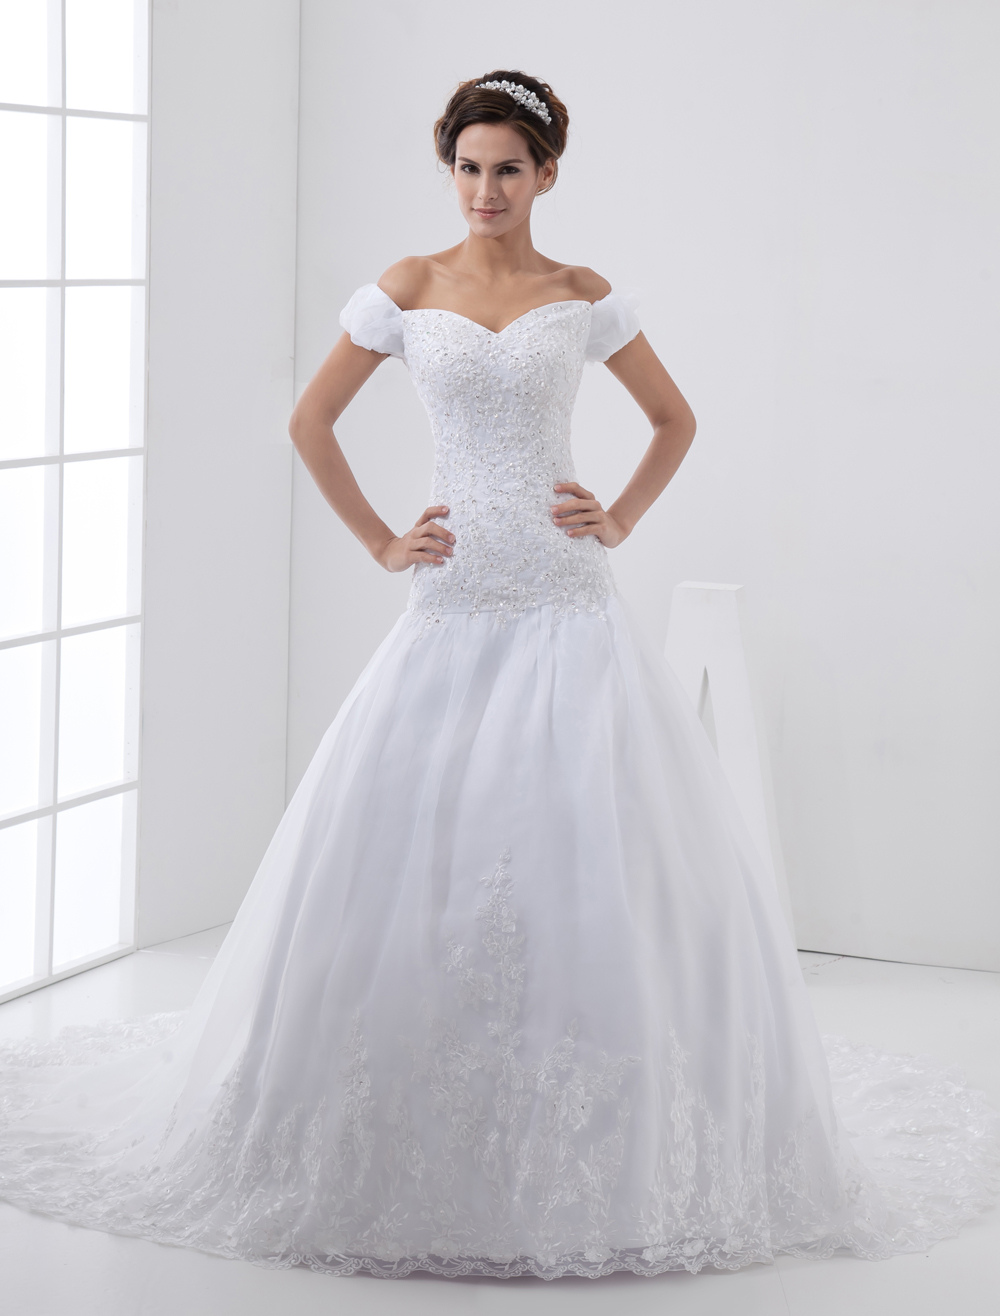 White Bridal Dress Sweetheart  Off The Shoulder A Line Lace Organza Beaded Wedding Dress 2018